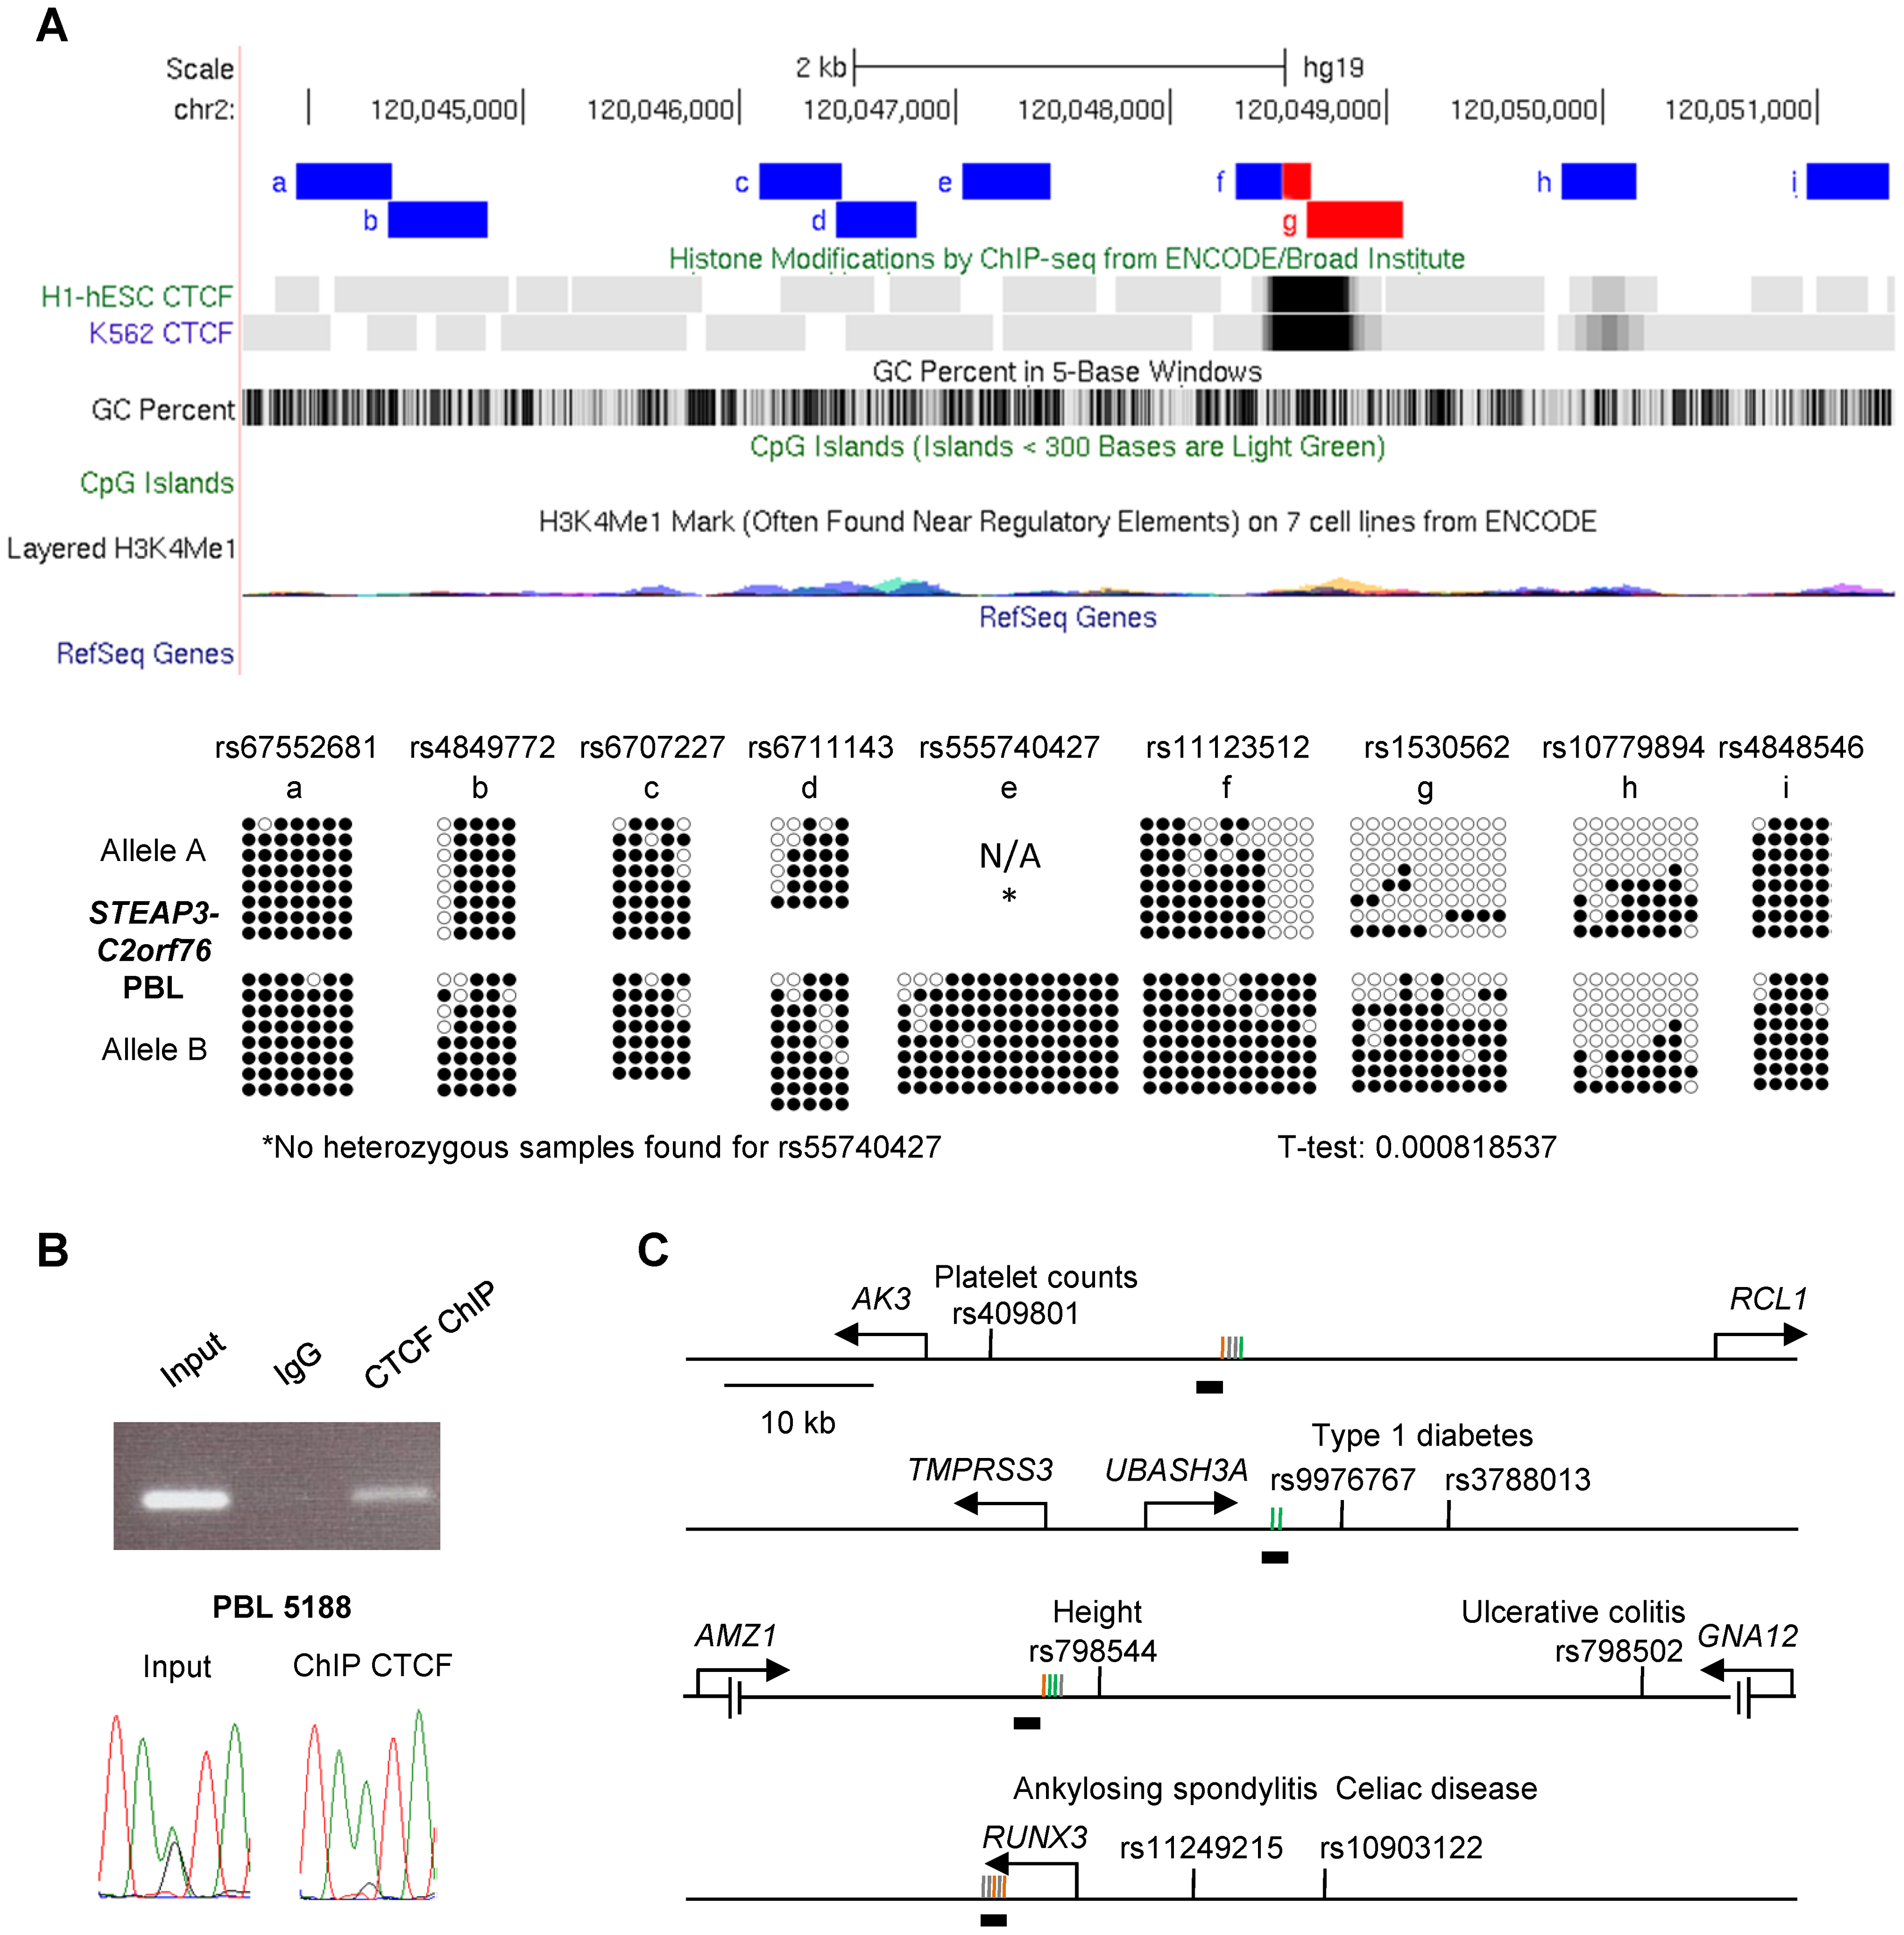 The <i>STEAP3-C2orf76</i> DMR with non-imprinted ASM overlaps a CTCF site, with CTCF preferentially bound to the unmethylated allele, and cross-indexing of ASM-associated CTCF sites with GWAS peaks provides evidence for regulatory haplotypes.